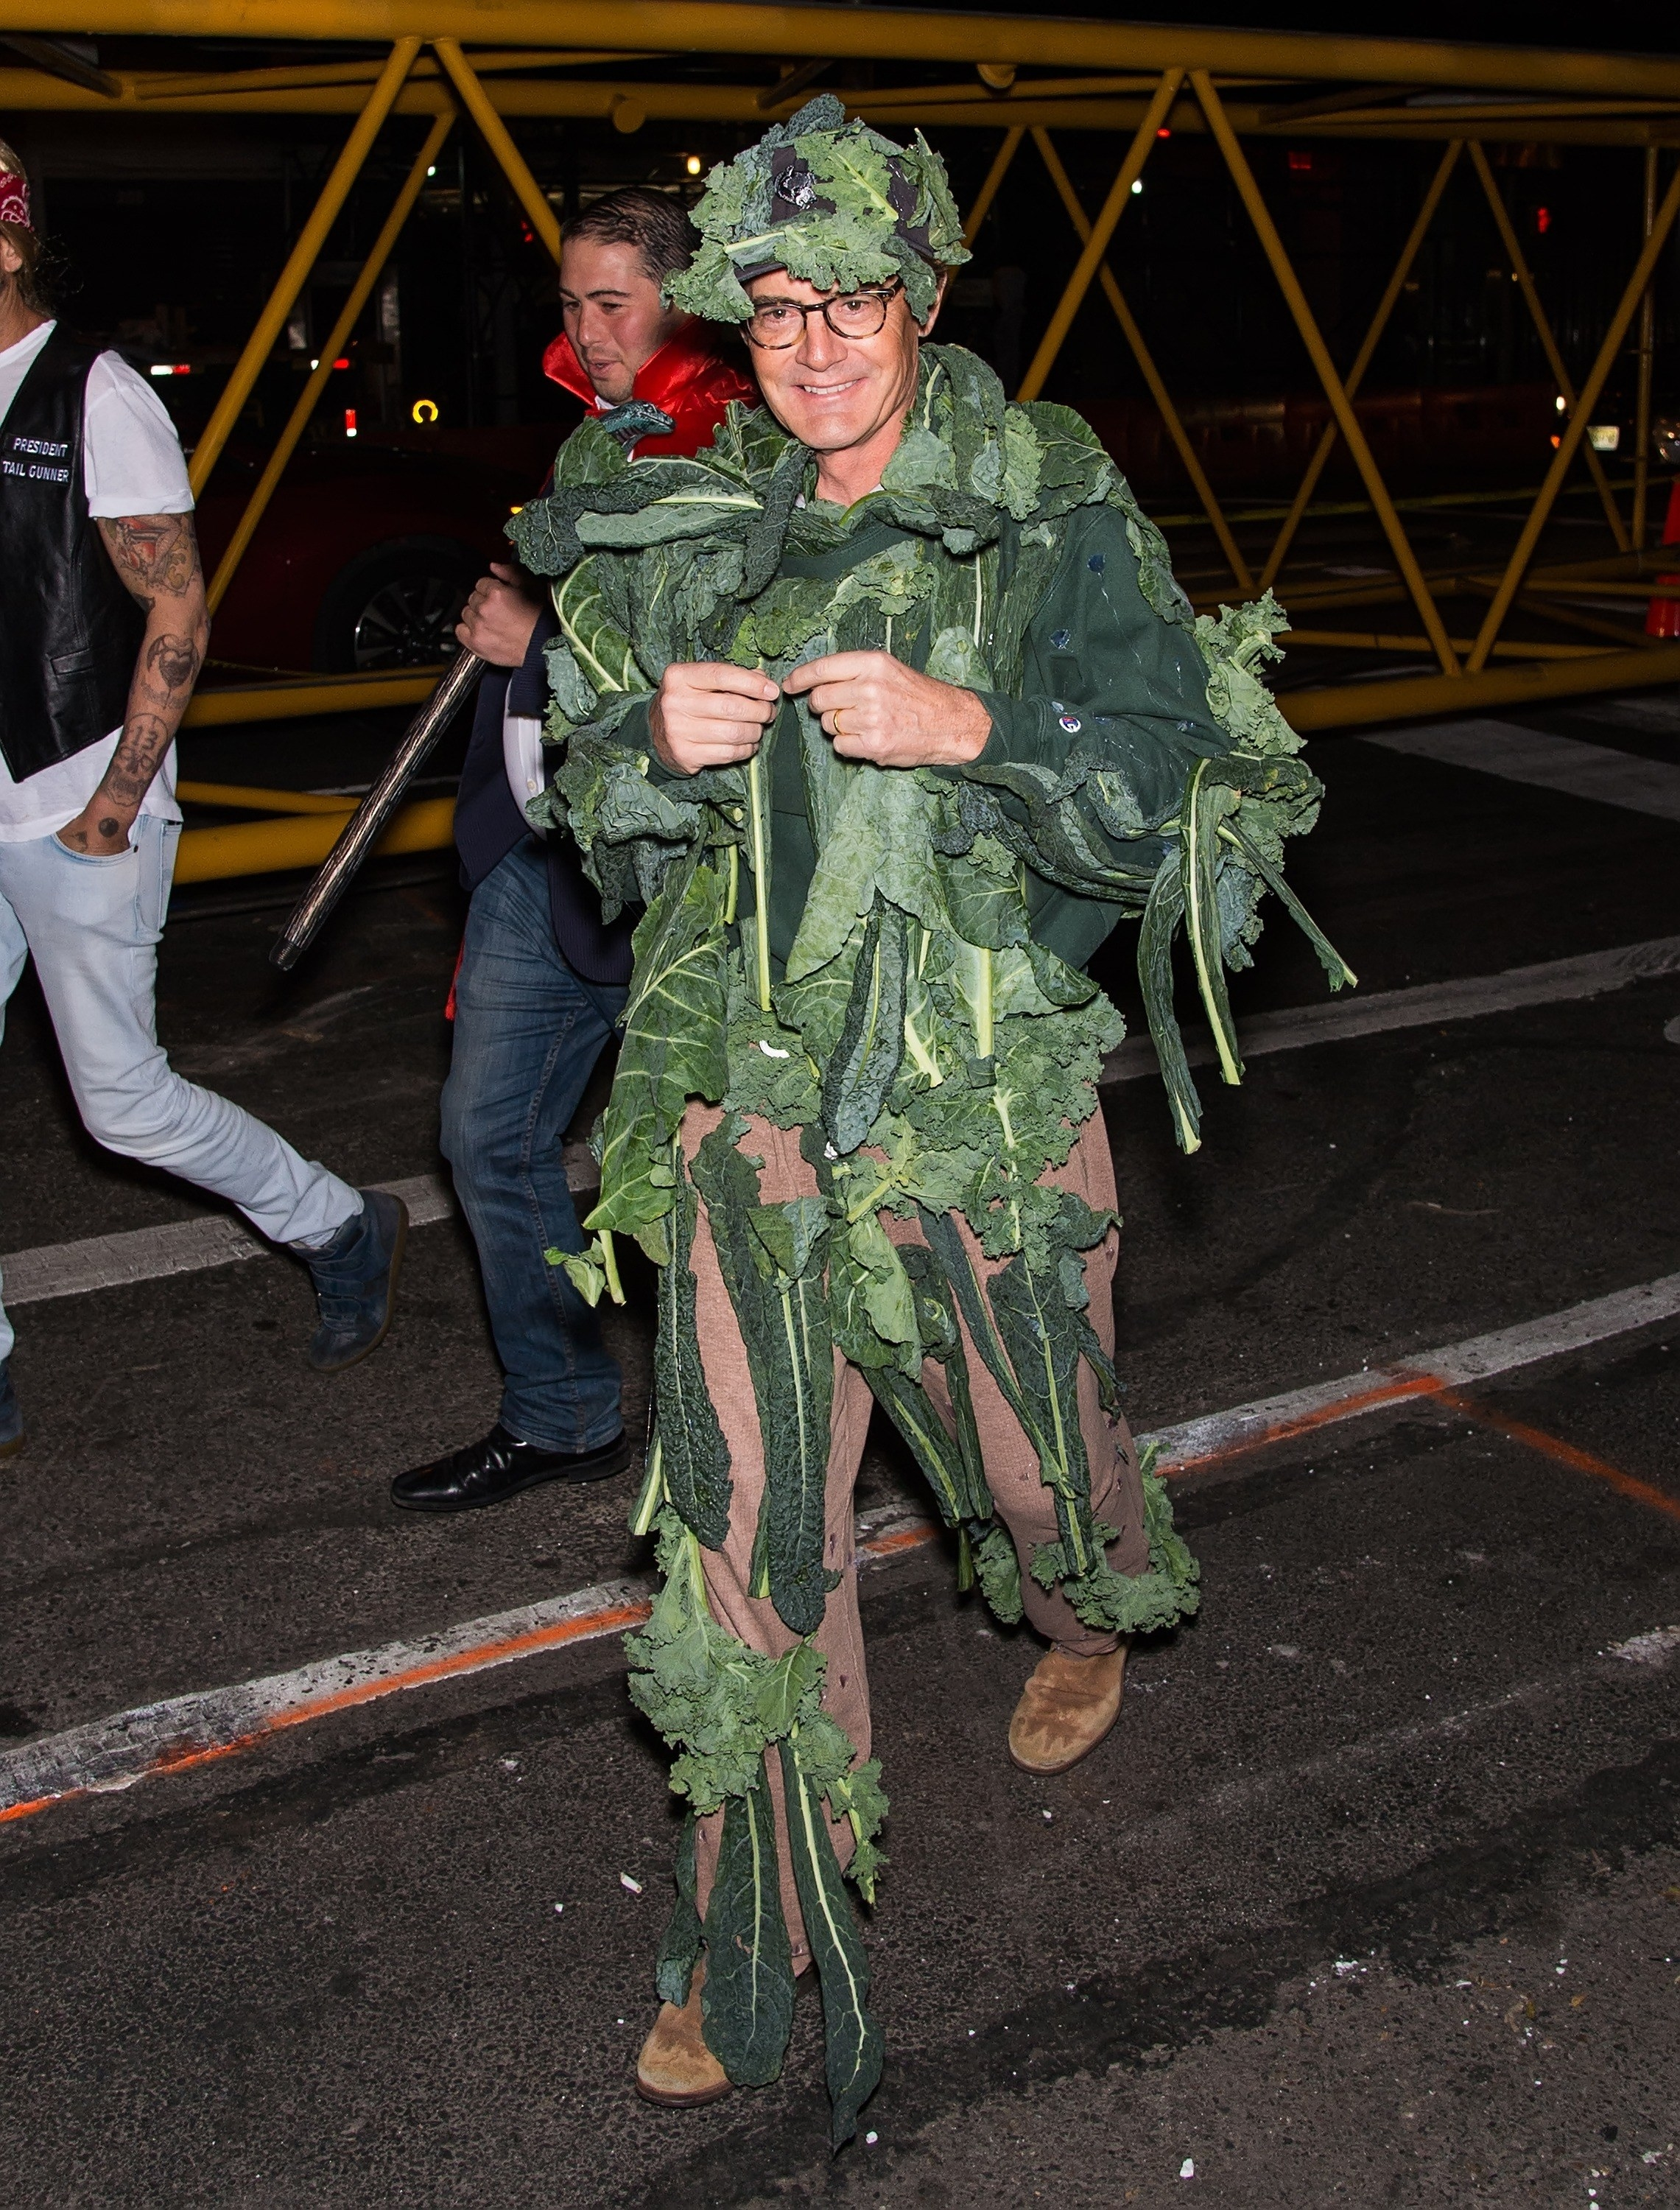 Kyle MacLachlan dressed in a suit with lots of kale pinned to it.